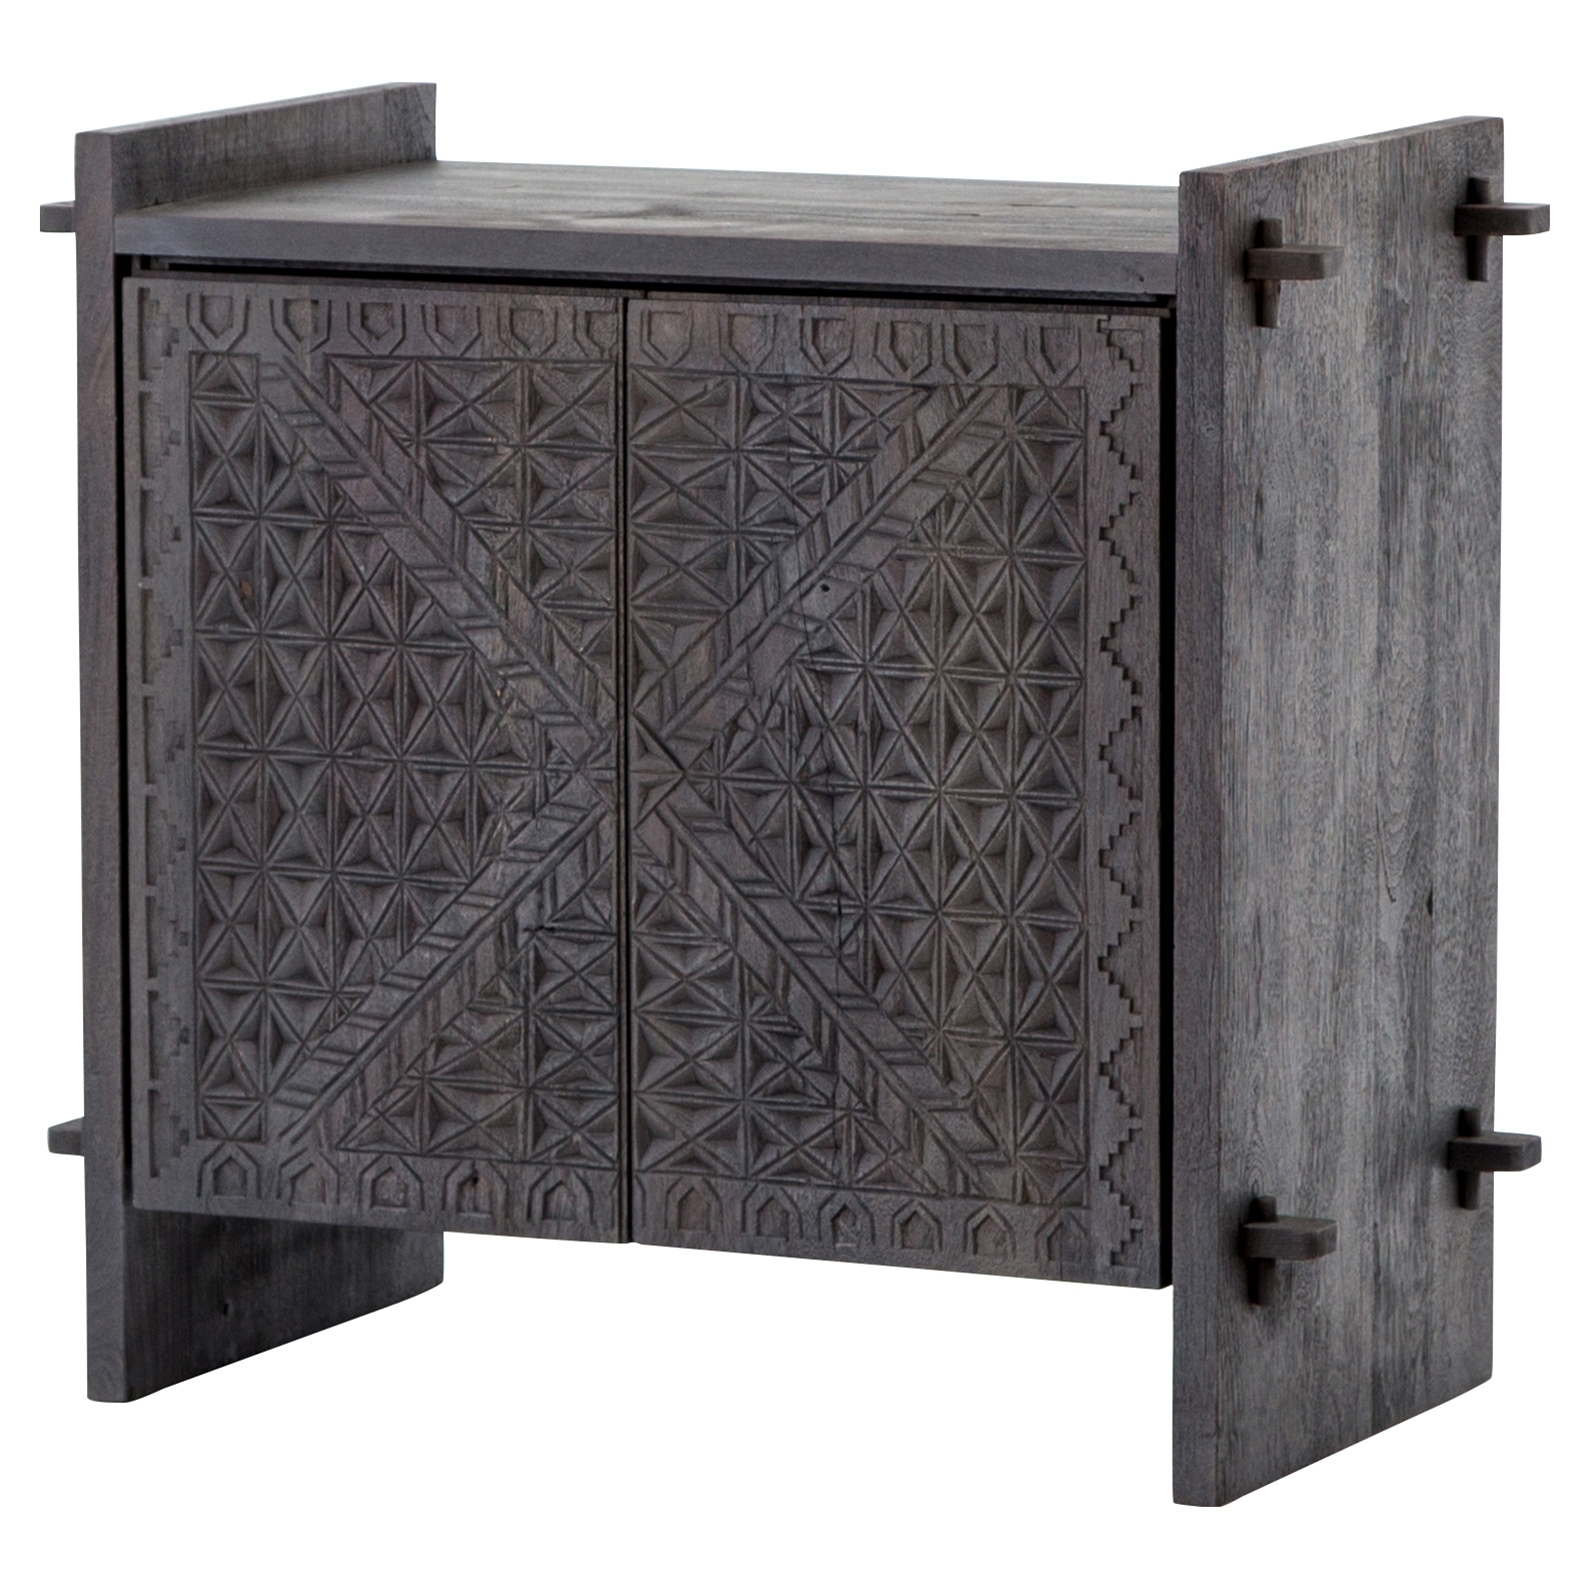 Buffets & Sideboards | Kathy Kuo Home Pertaining To Metal Framed Reclaimed Wood Sideboards (View 21 of 30)